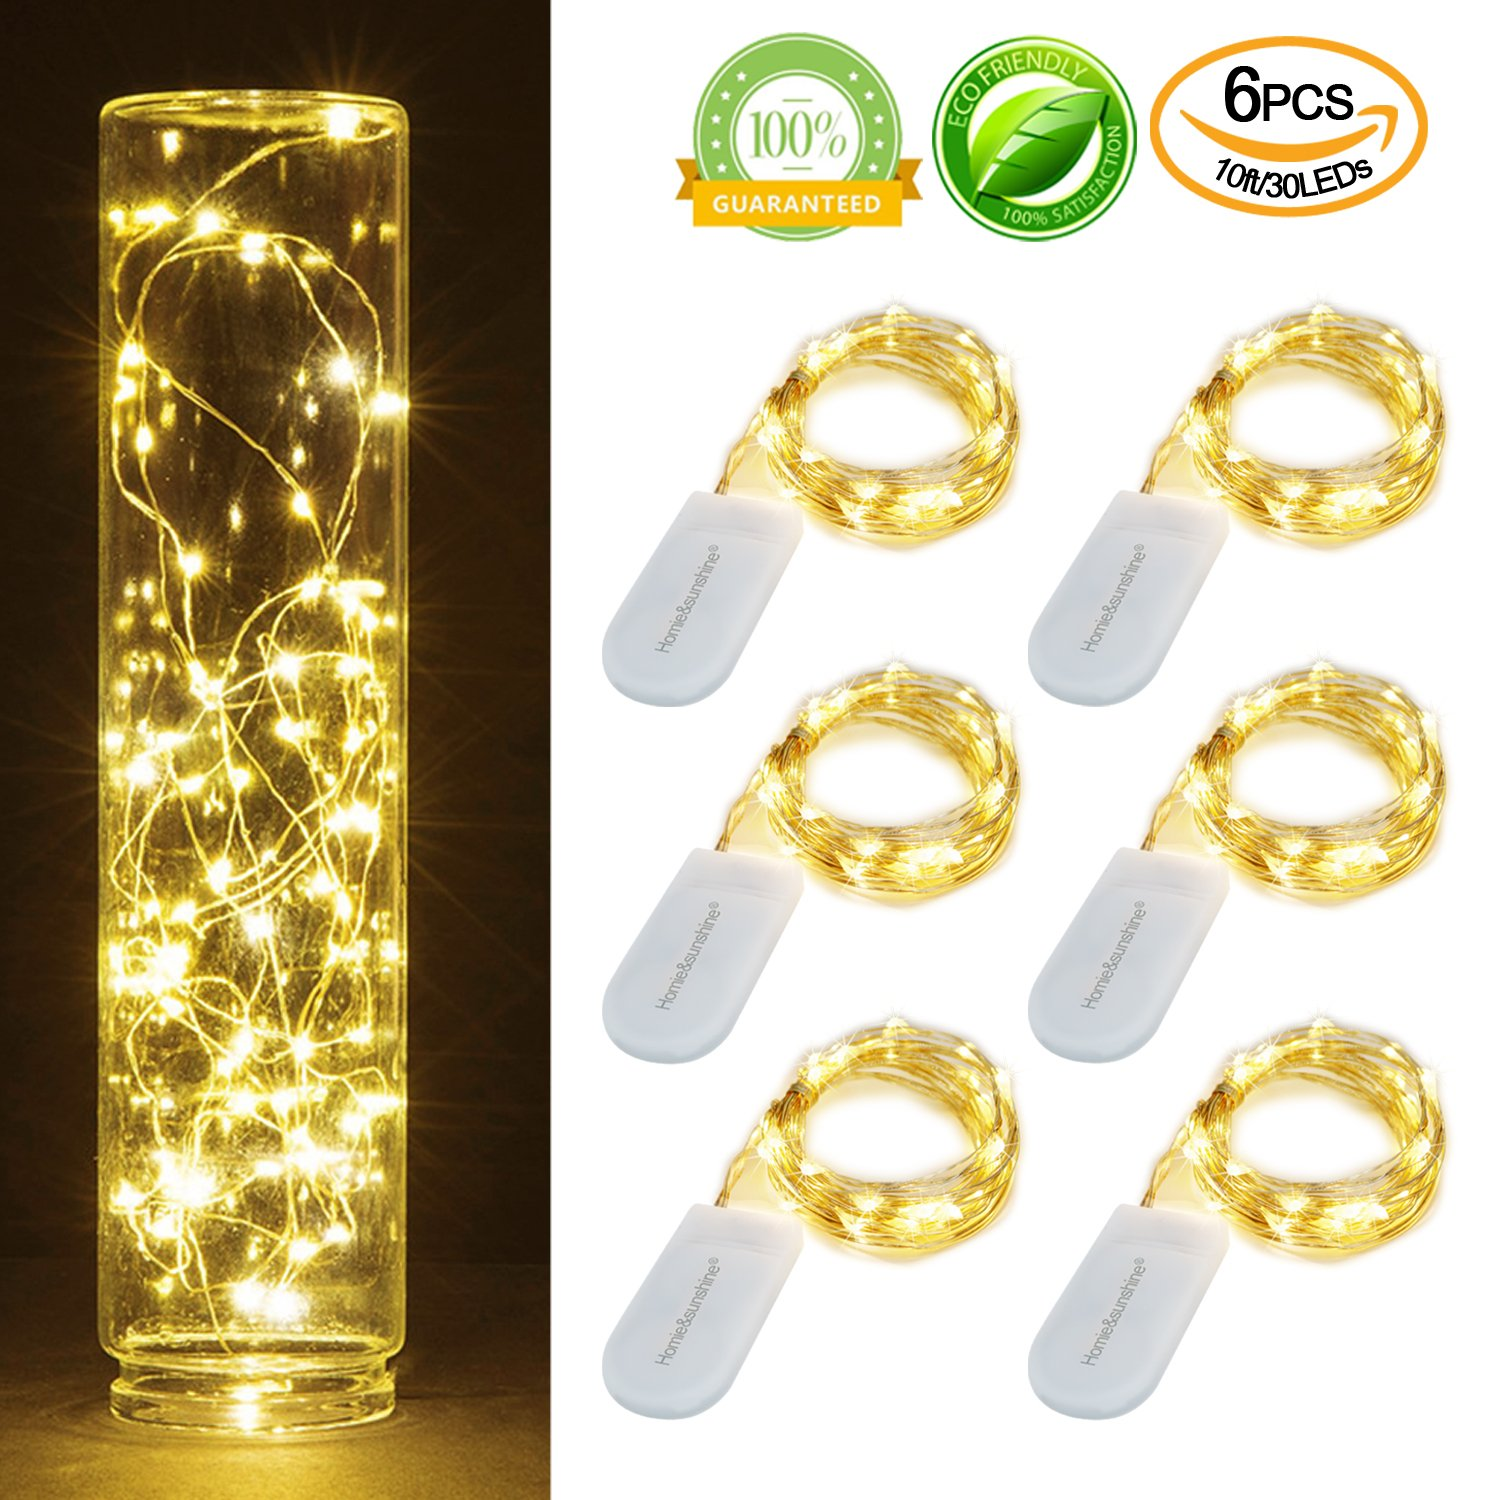 Amazon.com : Pack of 6 Sets 10ft(3m) LED Starry String Lights 30 ...